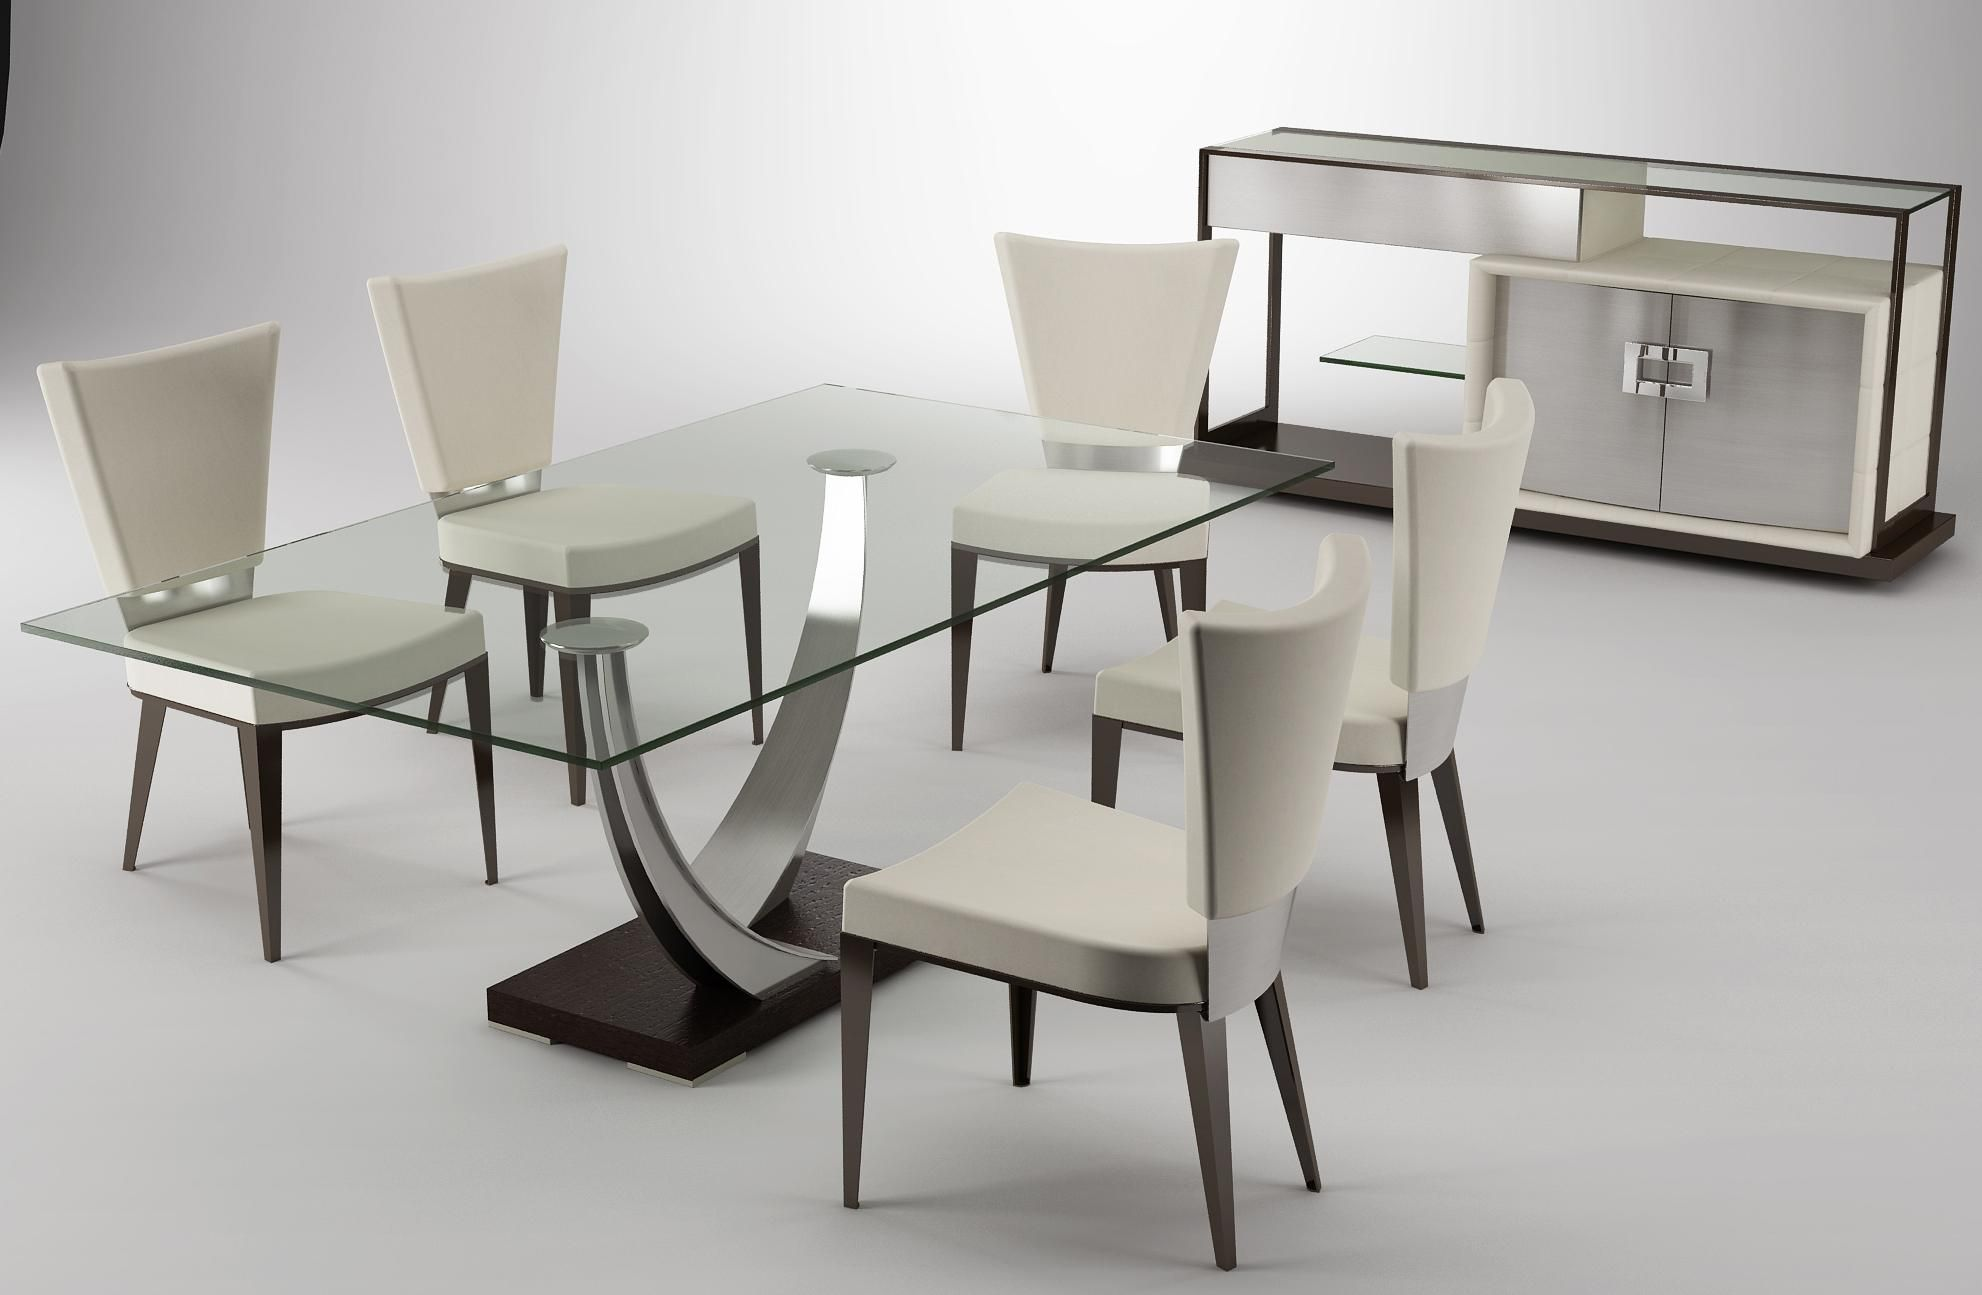 Amazing modern stylish dining room table set designs elite for Stylish dining table set